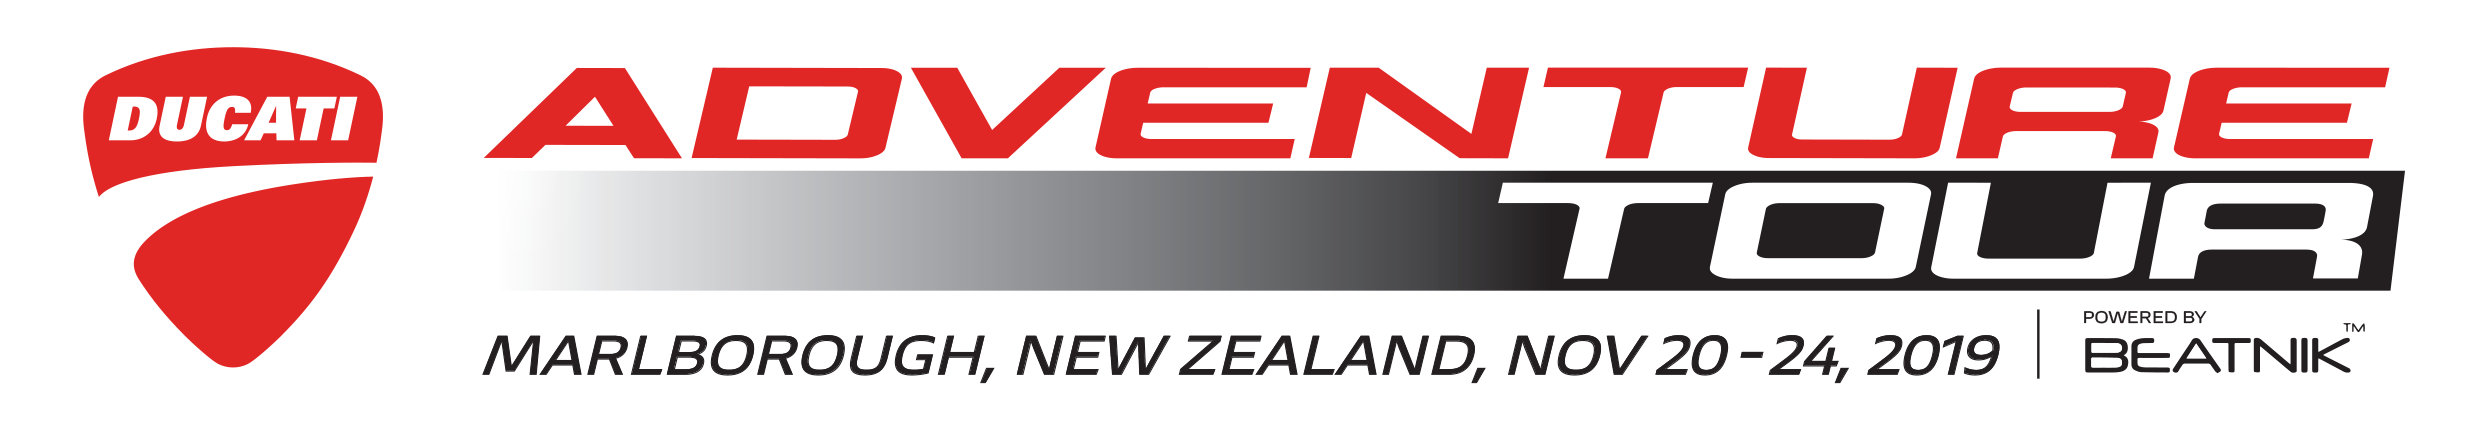 Ducati_Adventure_Tour_NZ_2019_logo.png